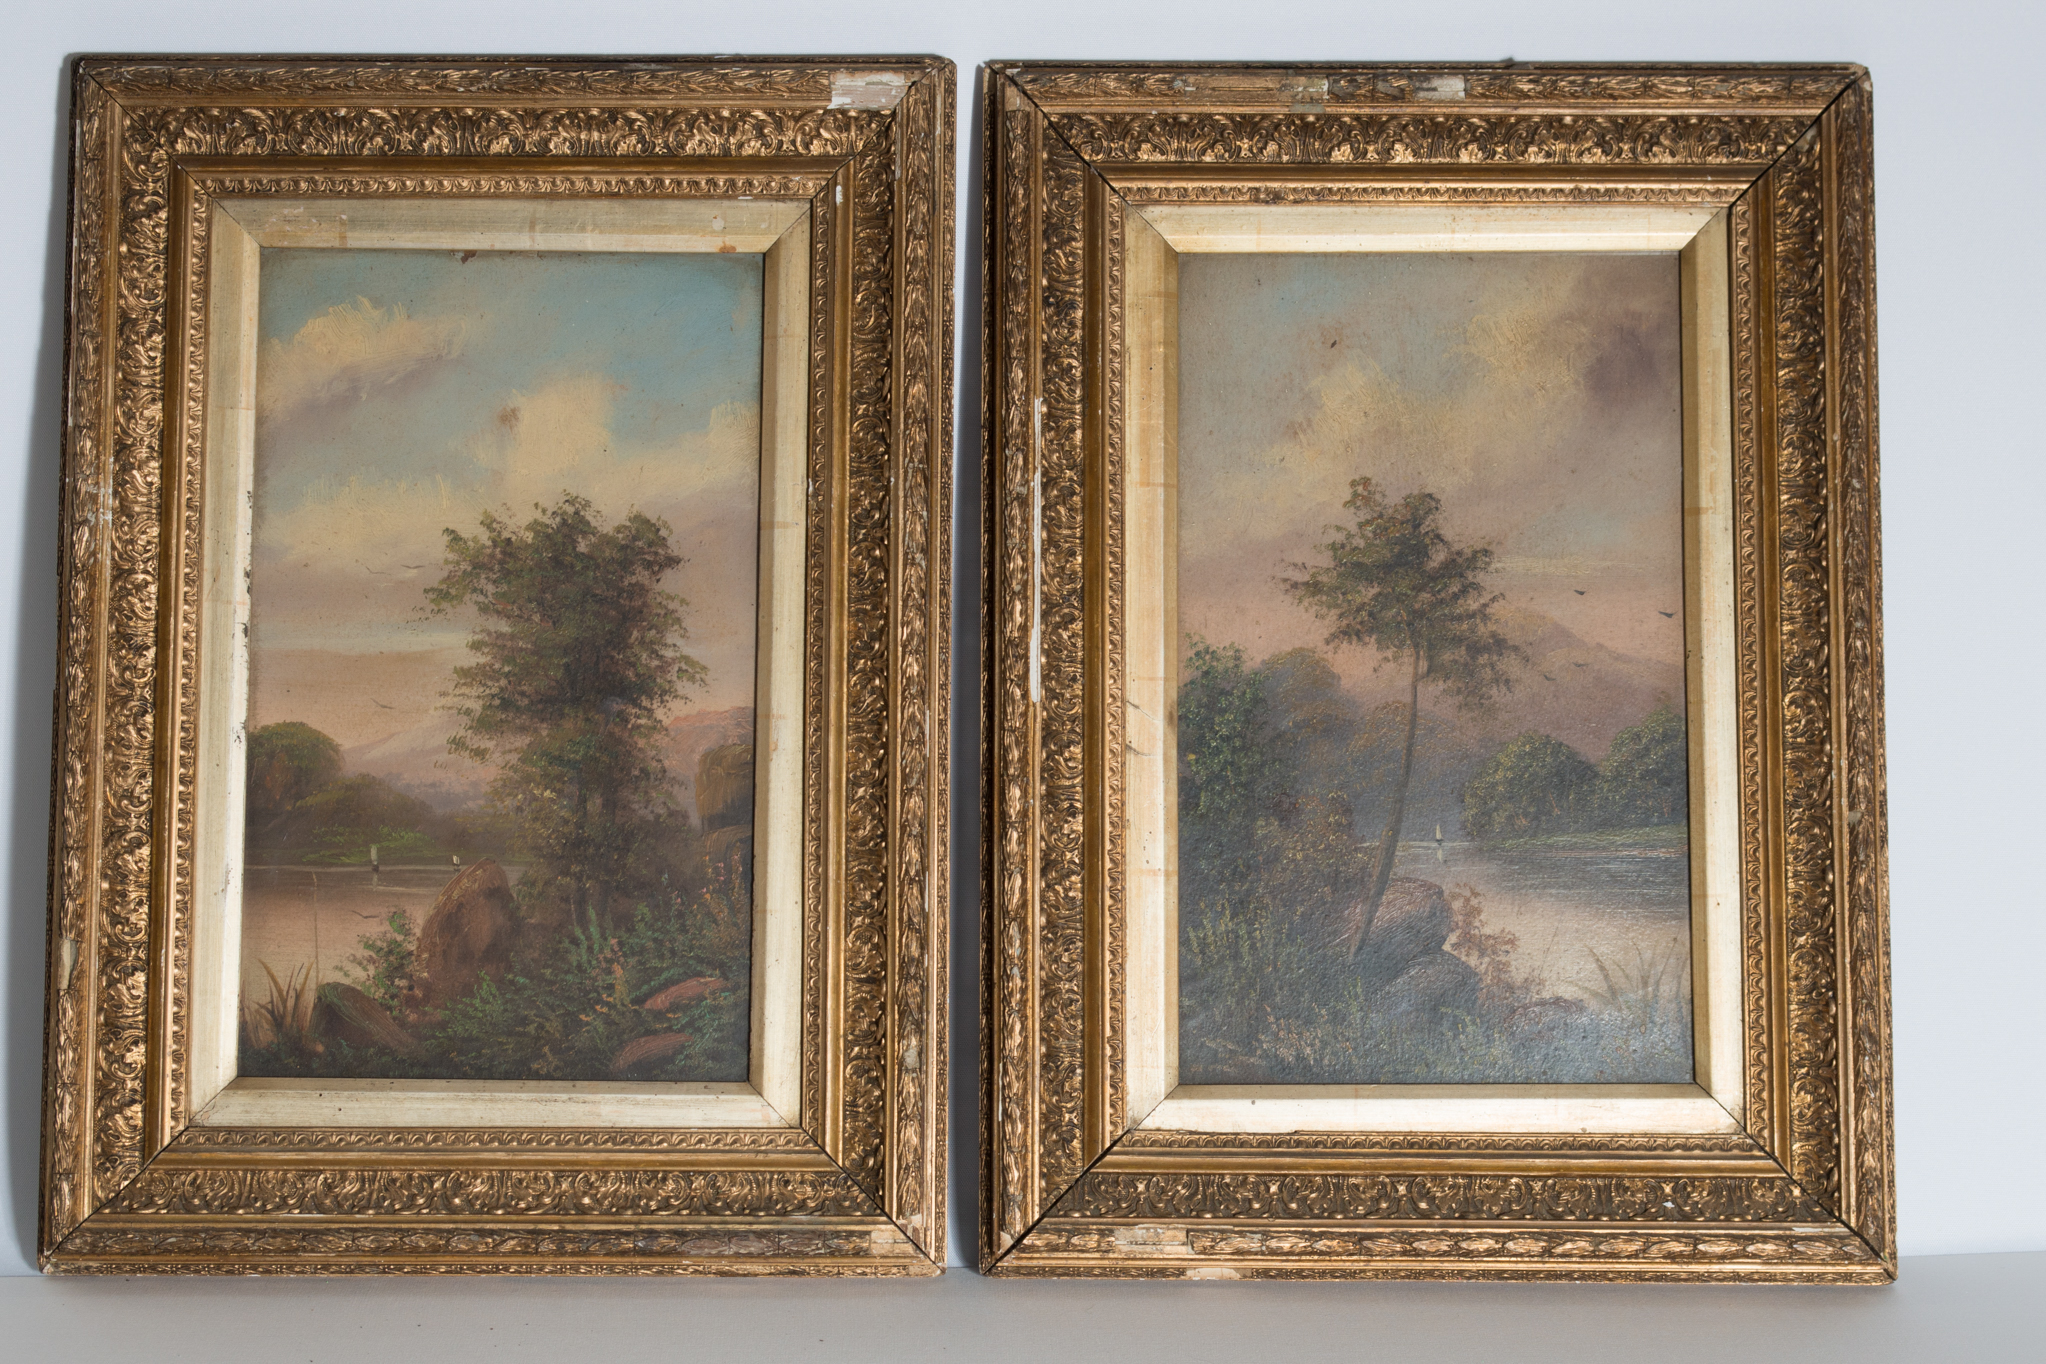 Lot 30 - A pair of early 20th century oils